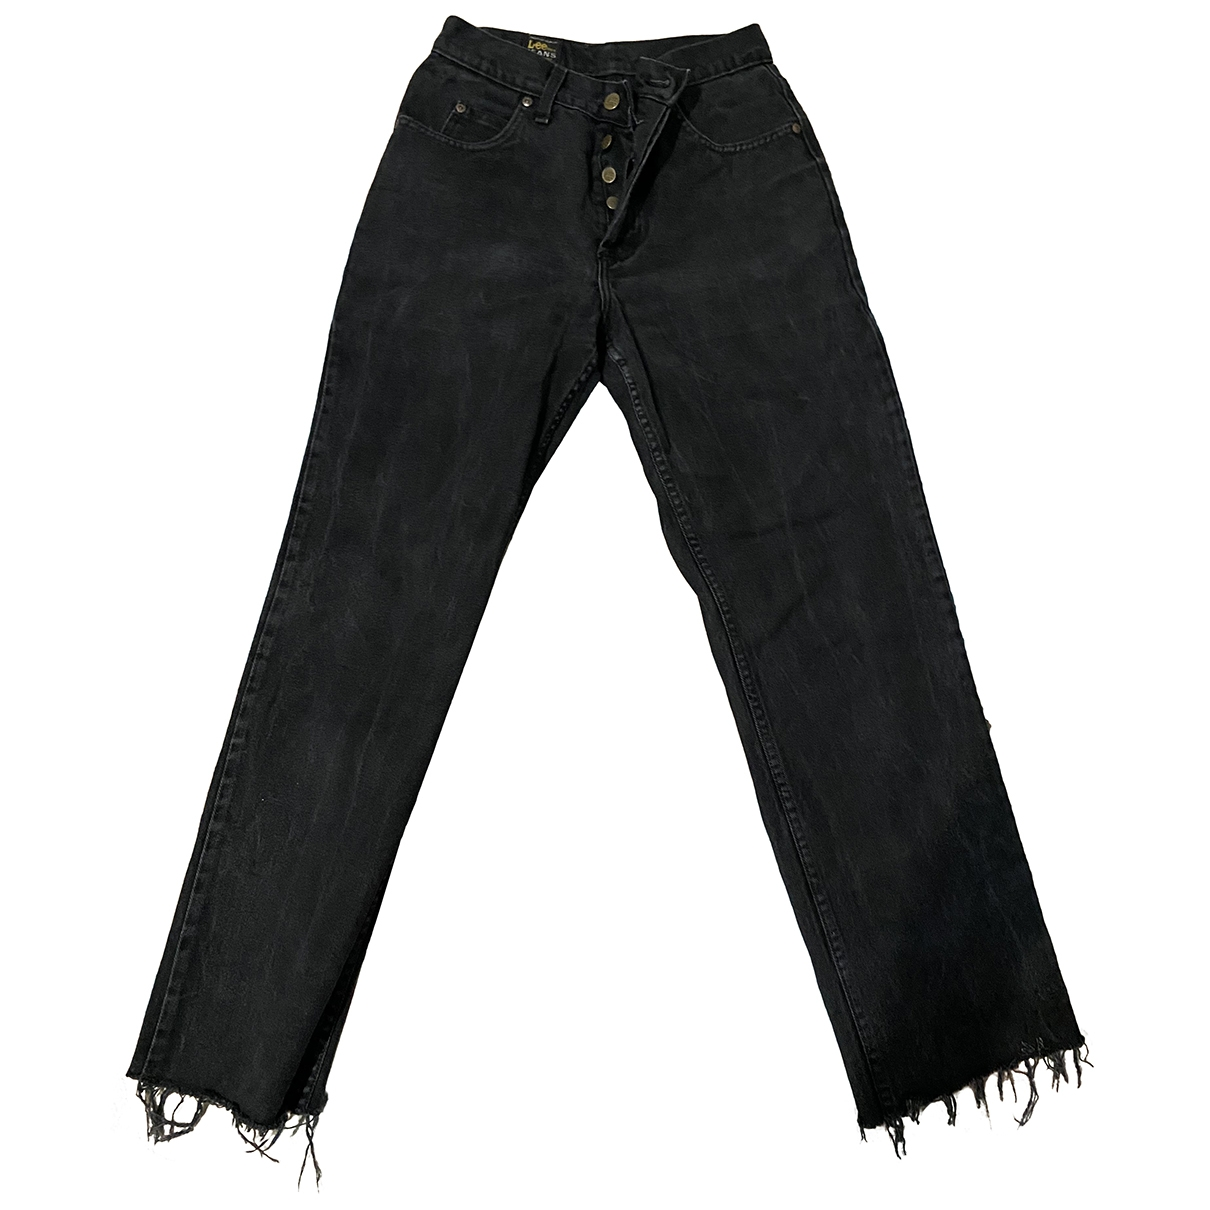 Lee \N Black Denim - Jeans Jeans for Women 32 US